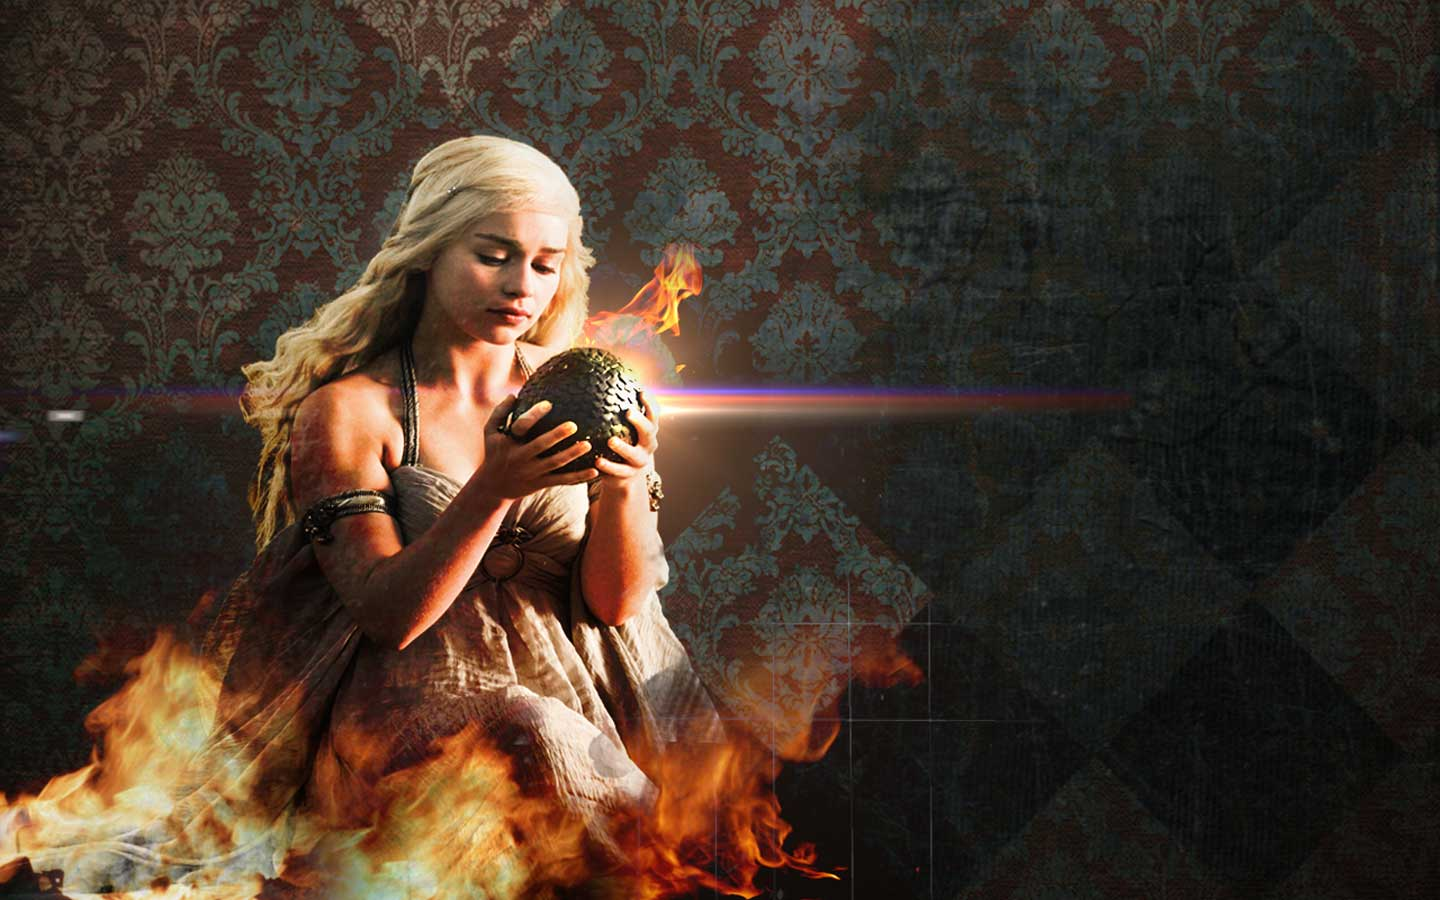 [50+] Game of Thrones Daenerys Wallpaper on WallpaperSafari